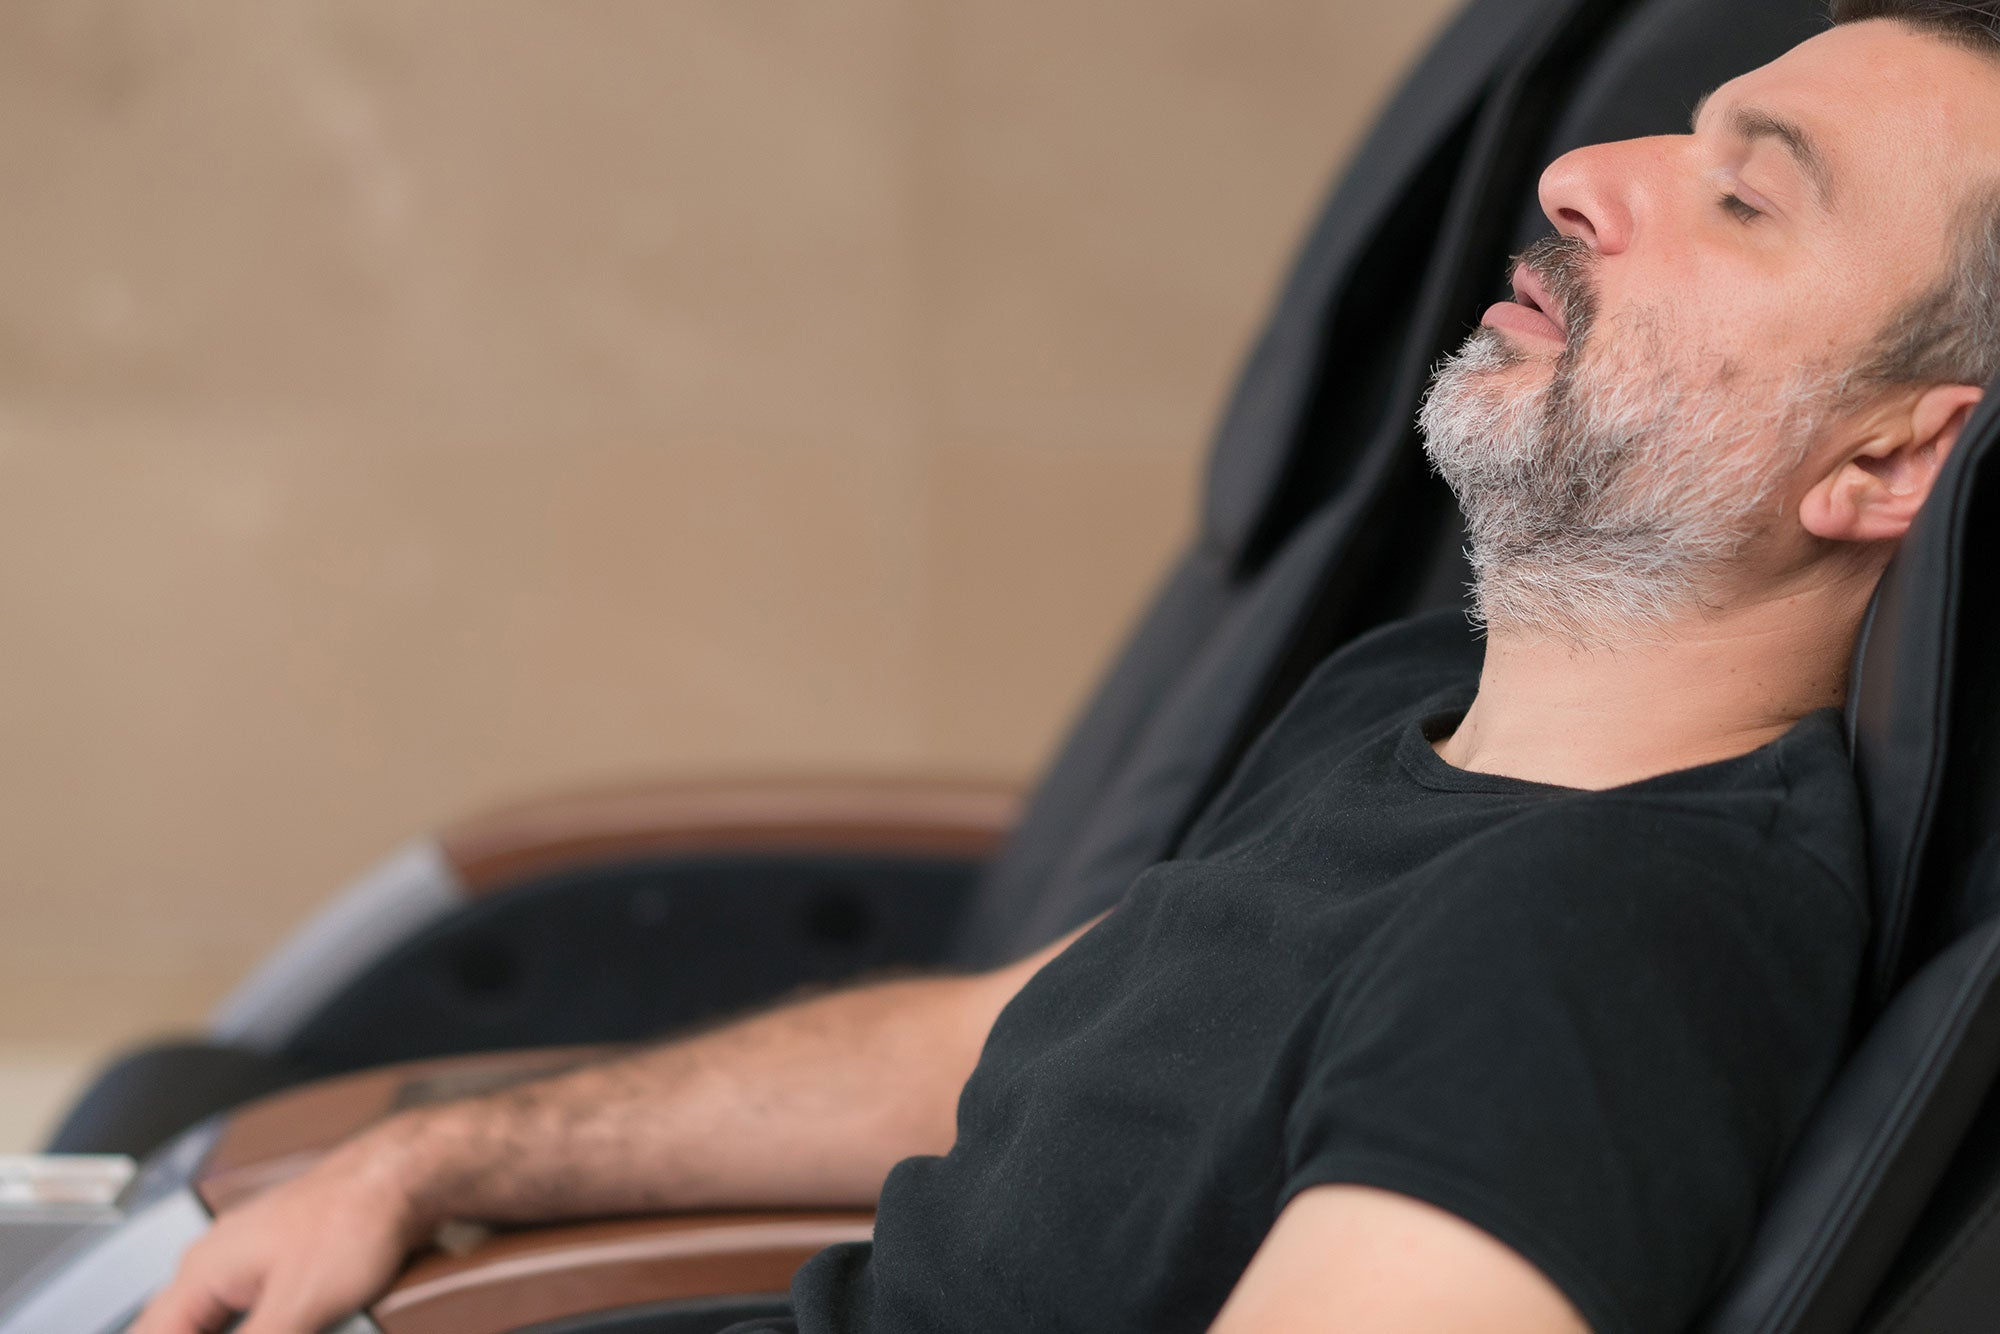 Guy relaxing in a massage chair